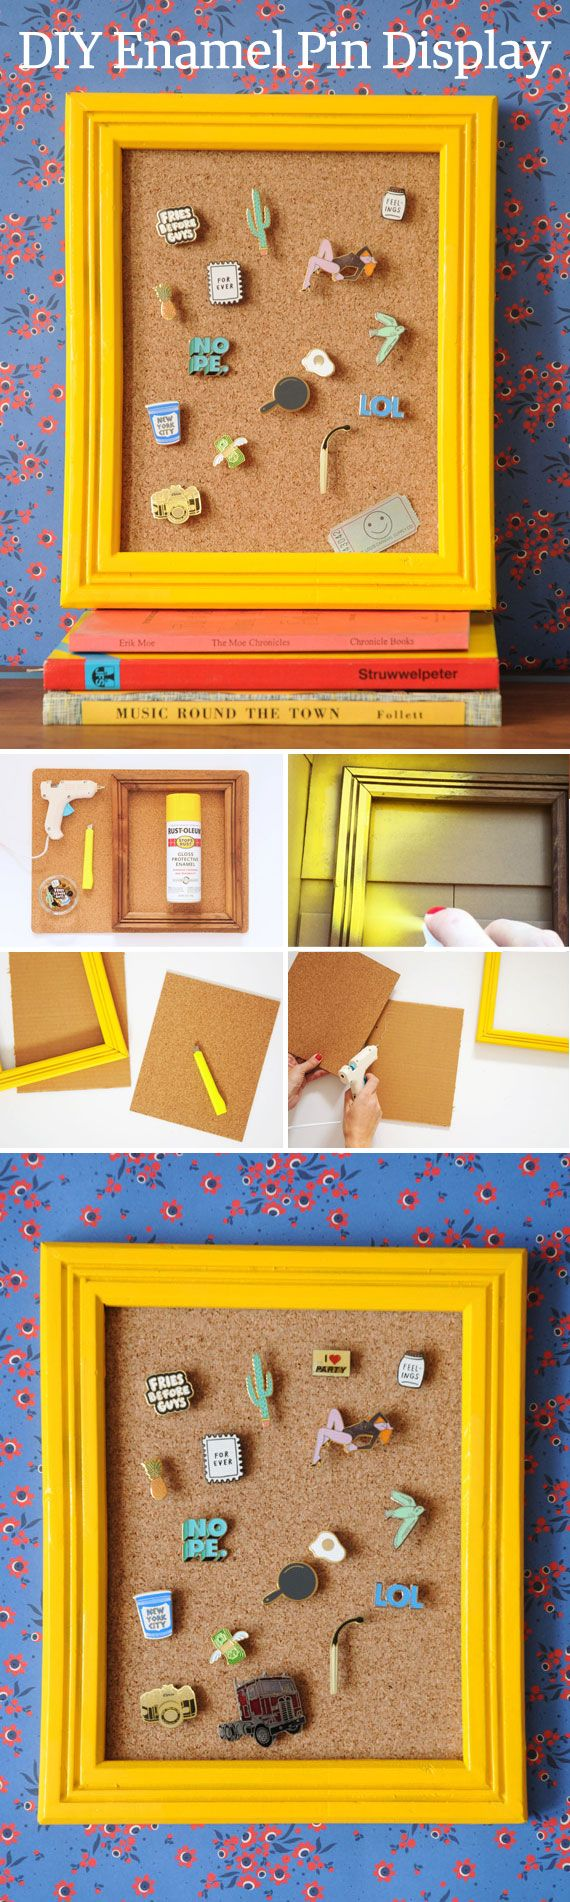 Why stash away a well-curated enamel pin collection in a jewelry box when you can put it on display? We'll show you how, with this #DIY project by @amandakingloff – now on the #Etsy Blog.